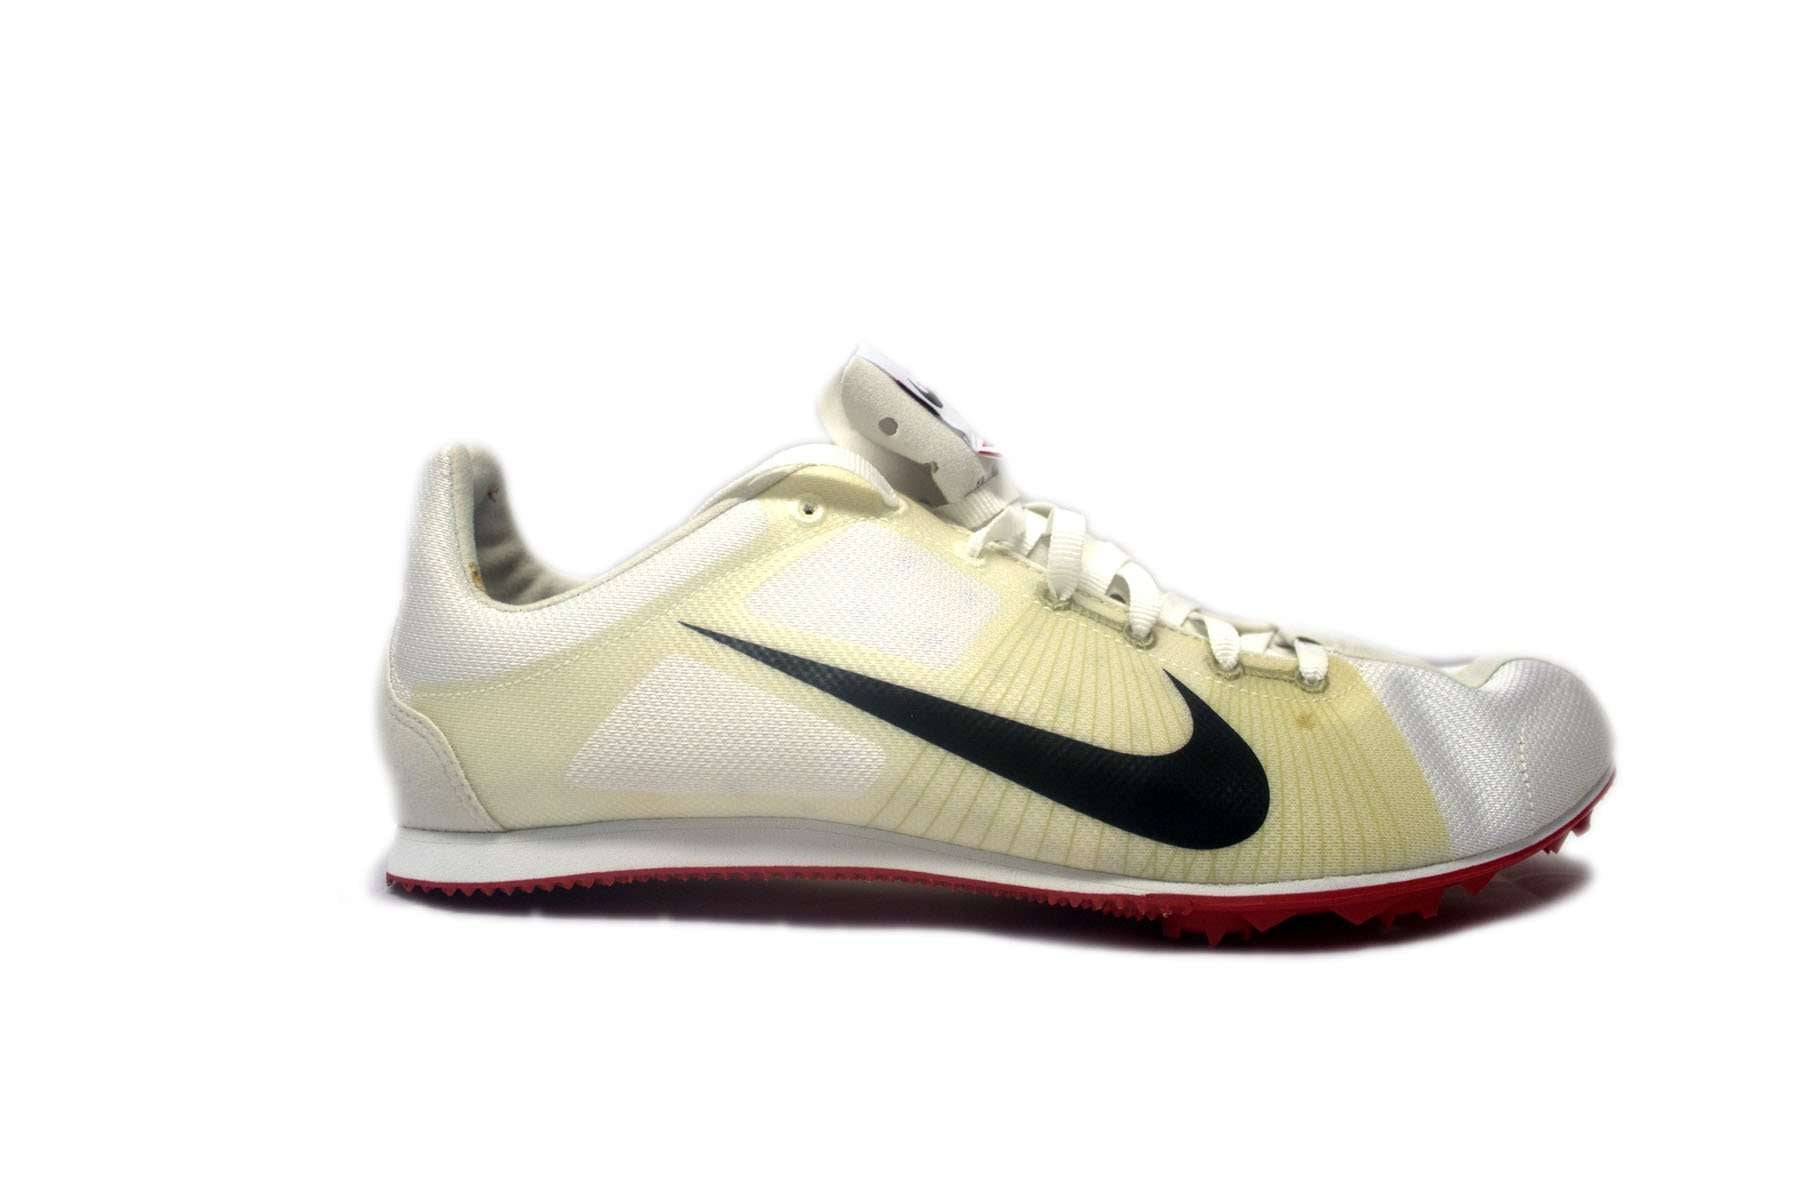 737b7be68d822 Nike Men's Rival D IV Track and Field Spikes